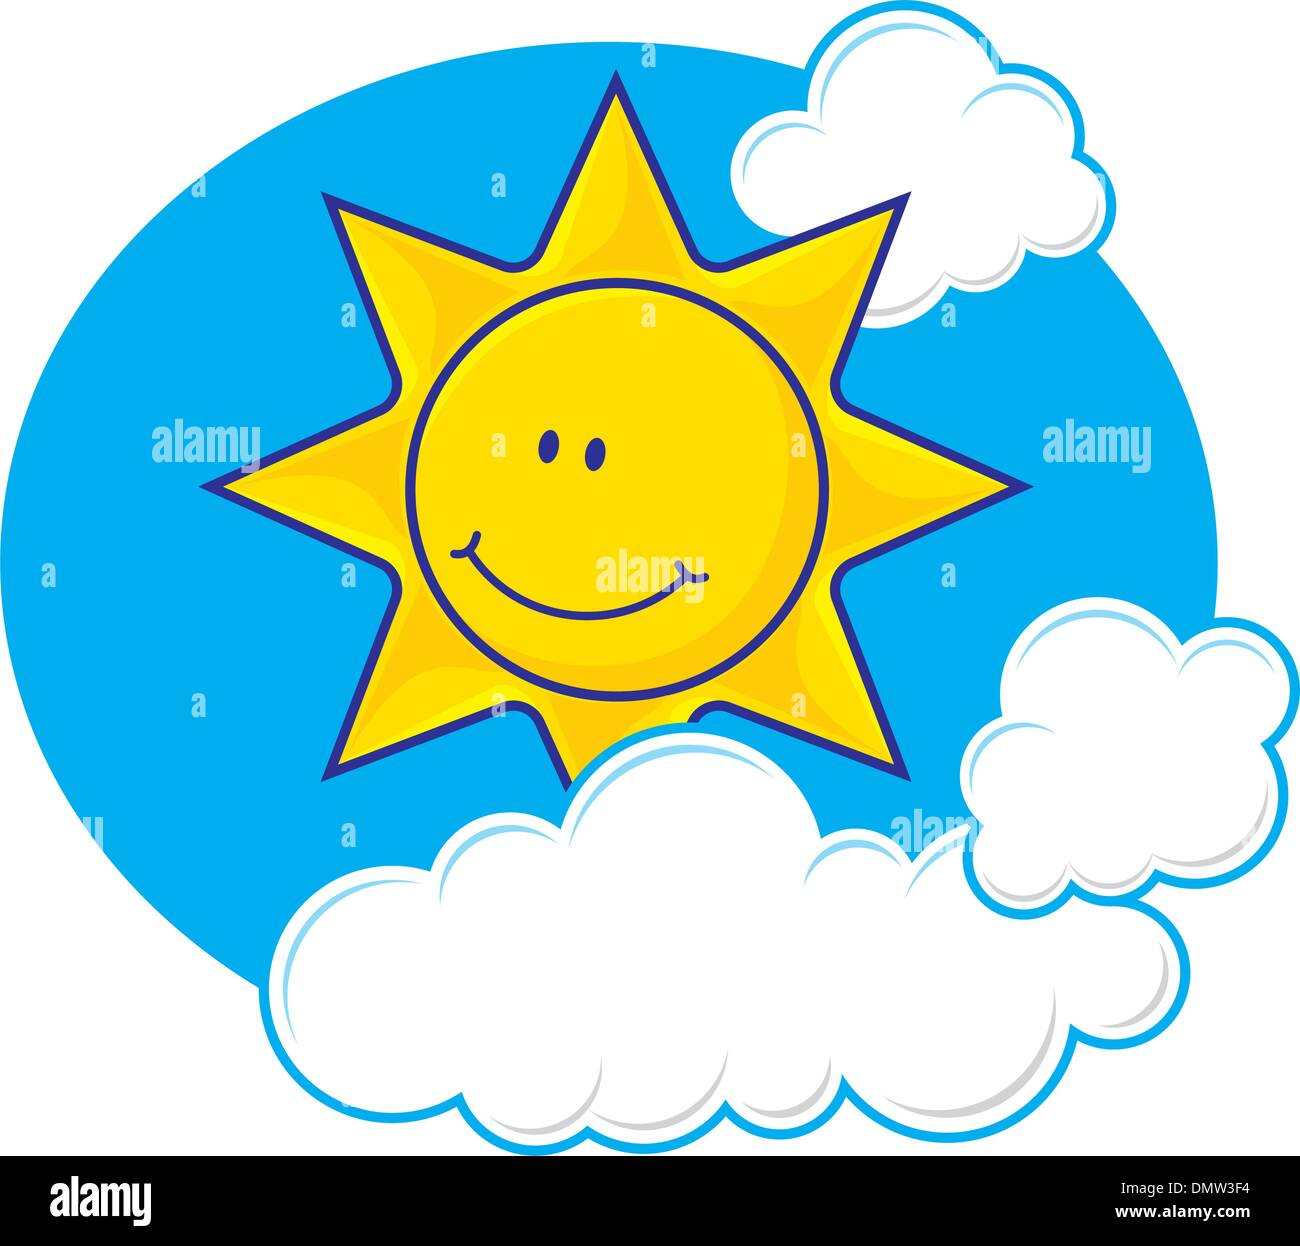 Sun with clouds vector - Stock Image